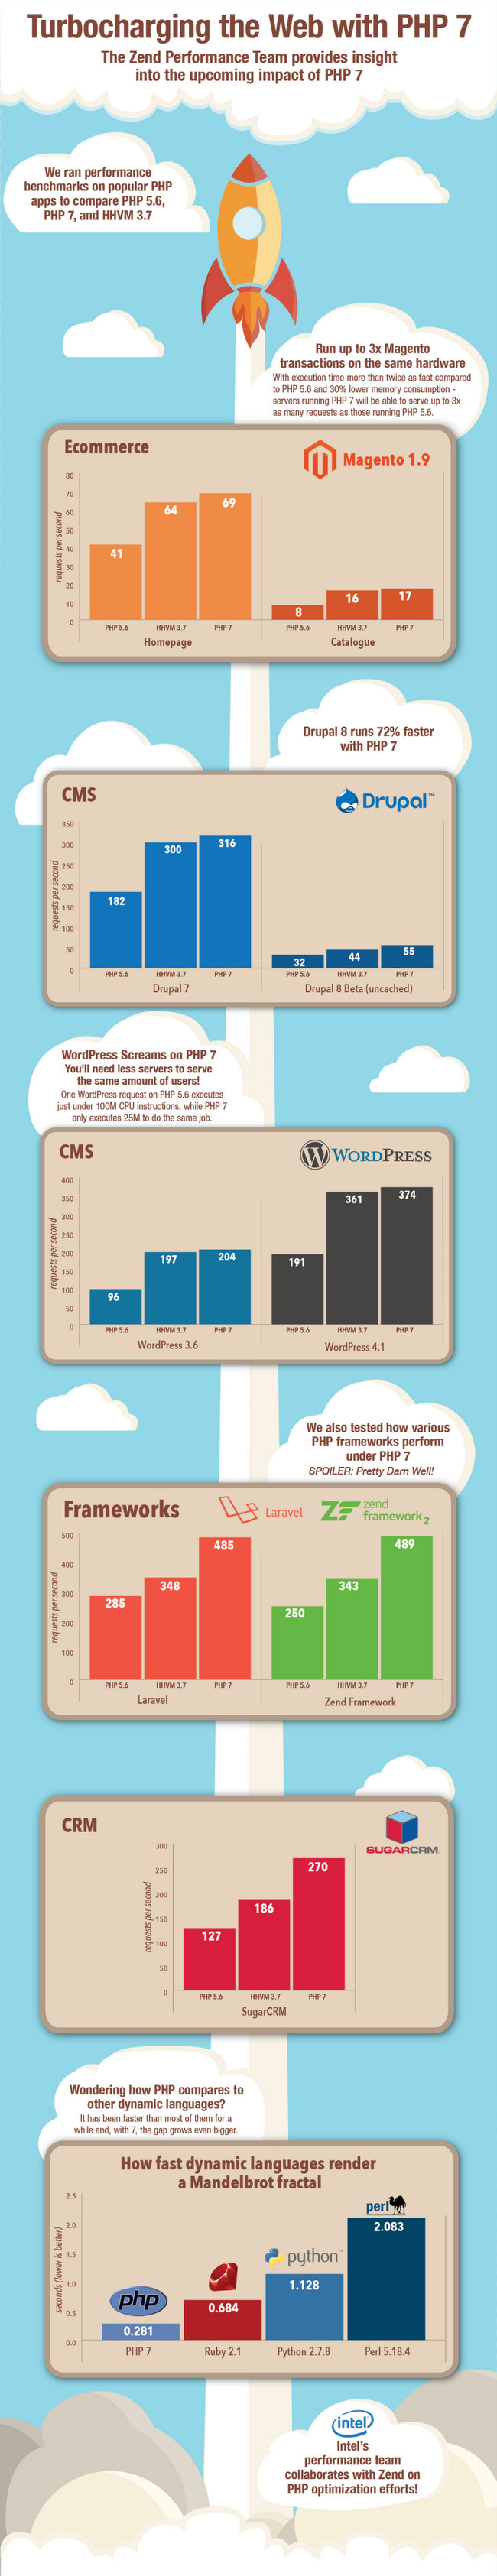 php7 performance infographic